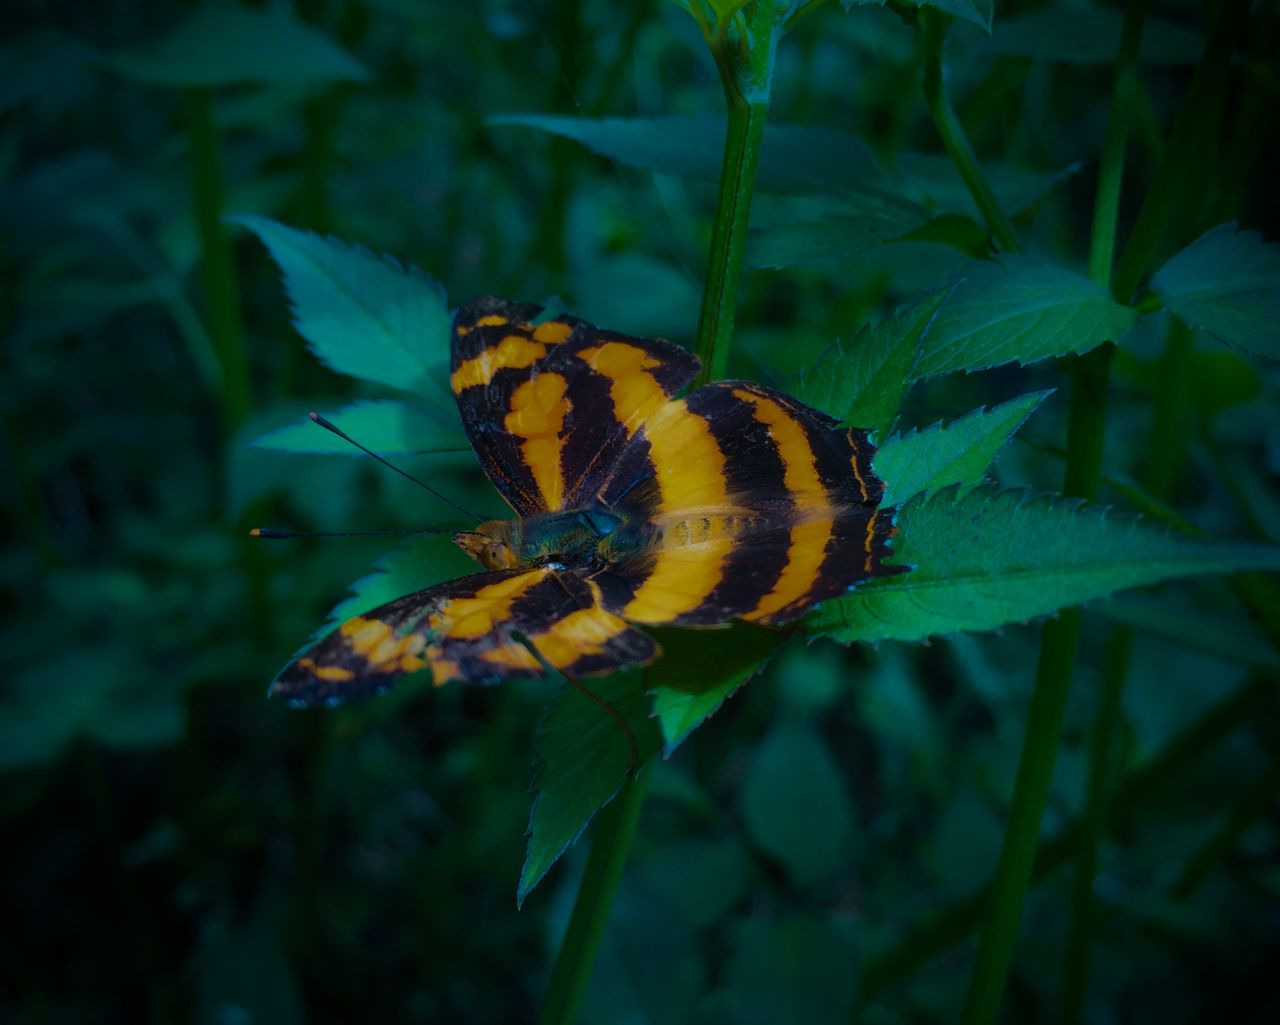 animal wildlife, beauty in nature, animals in the wild, animal themes, animal, invertebrate, plant, one animal, insect, plant part, leaf, close-up, growth, nature, yellow, flower, no people, fragility, vulnerability, flowering plant, animal wing, butterfly - insect, flower head, outdoors, butterfly, pollination